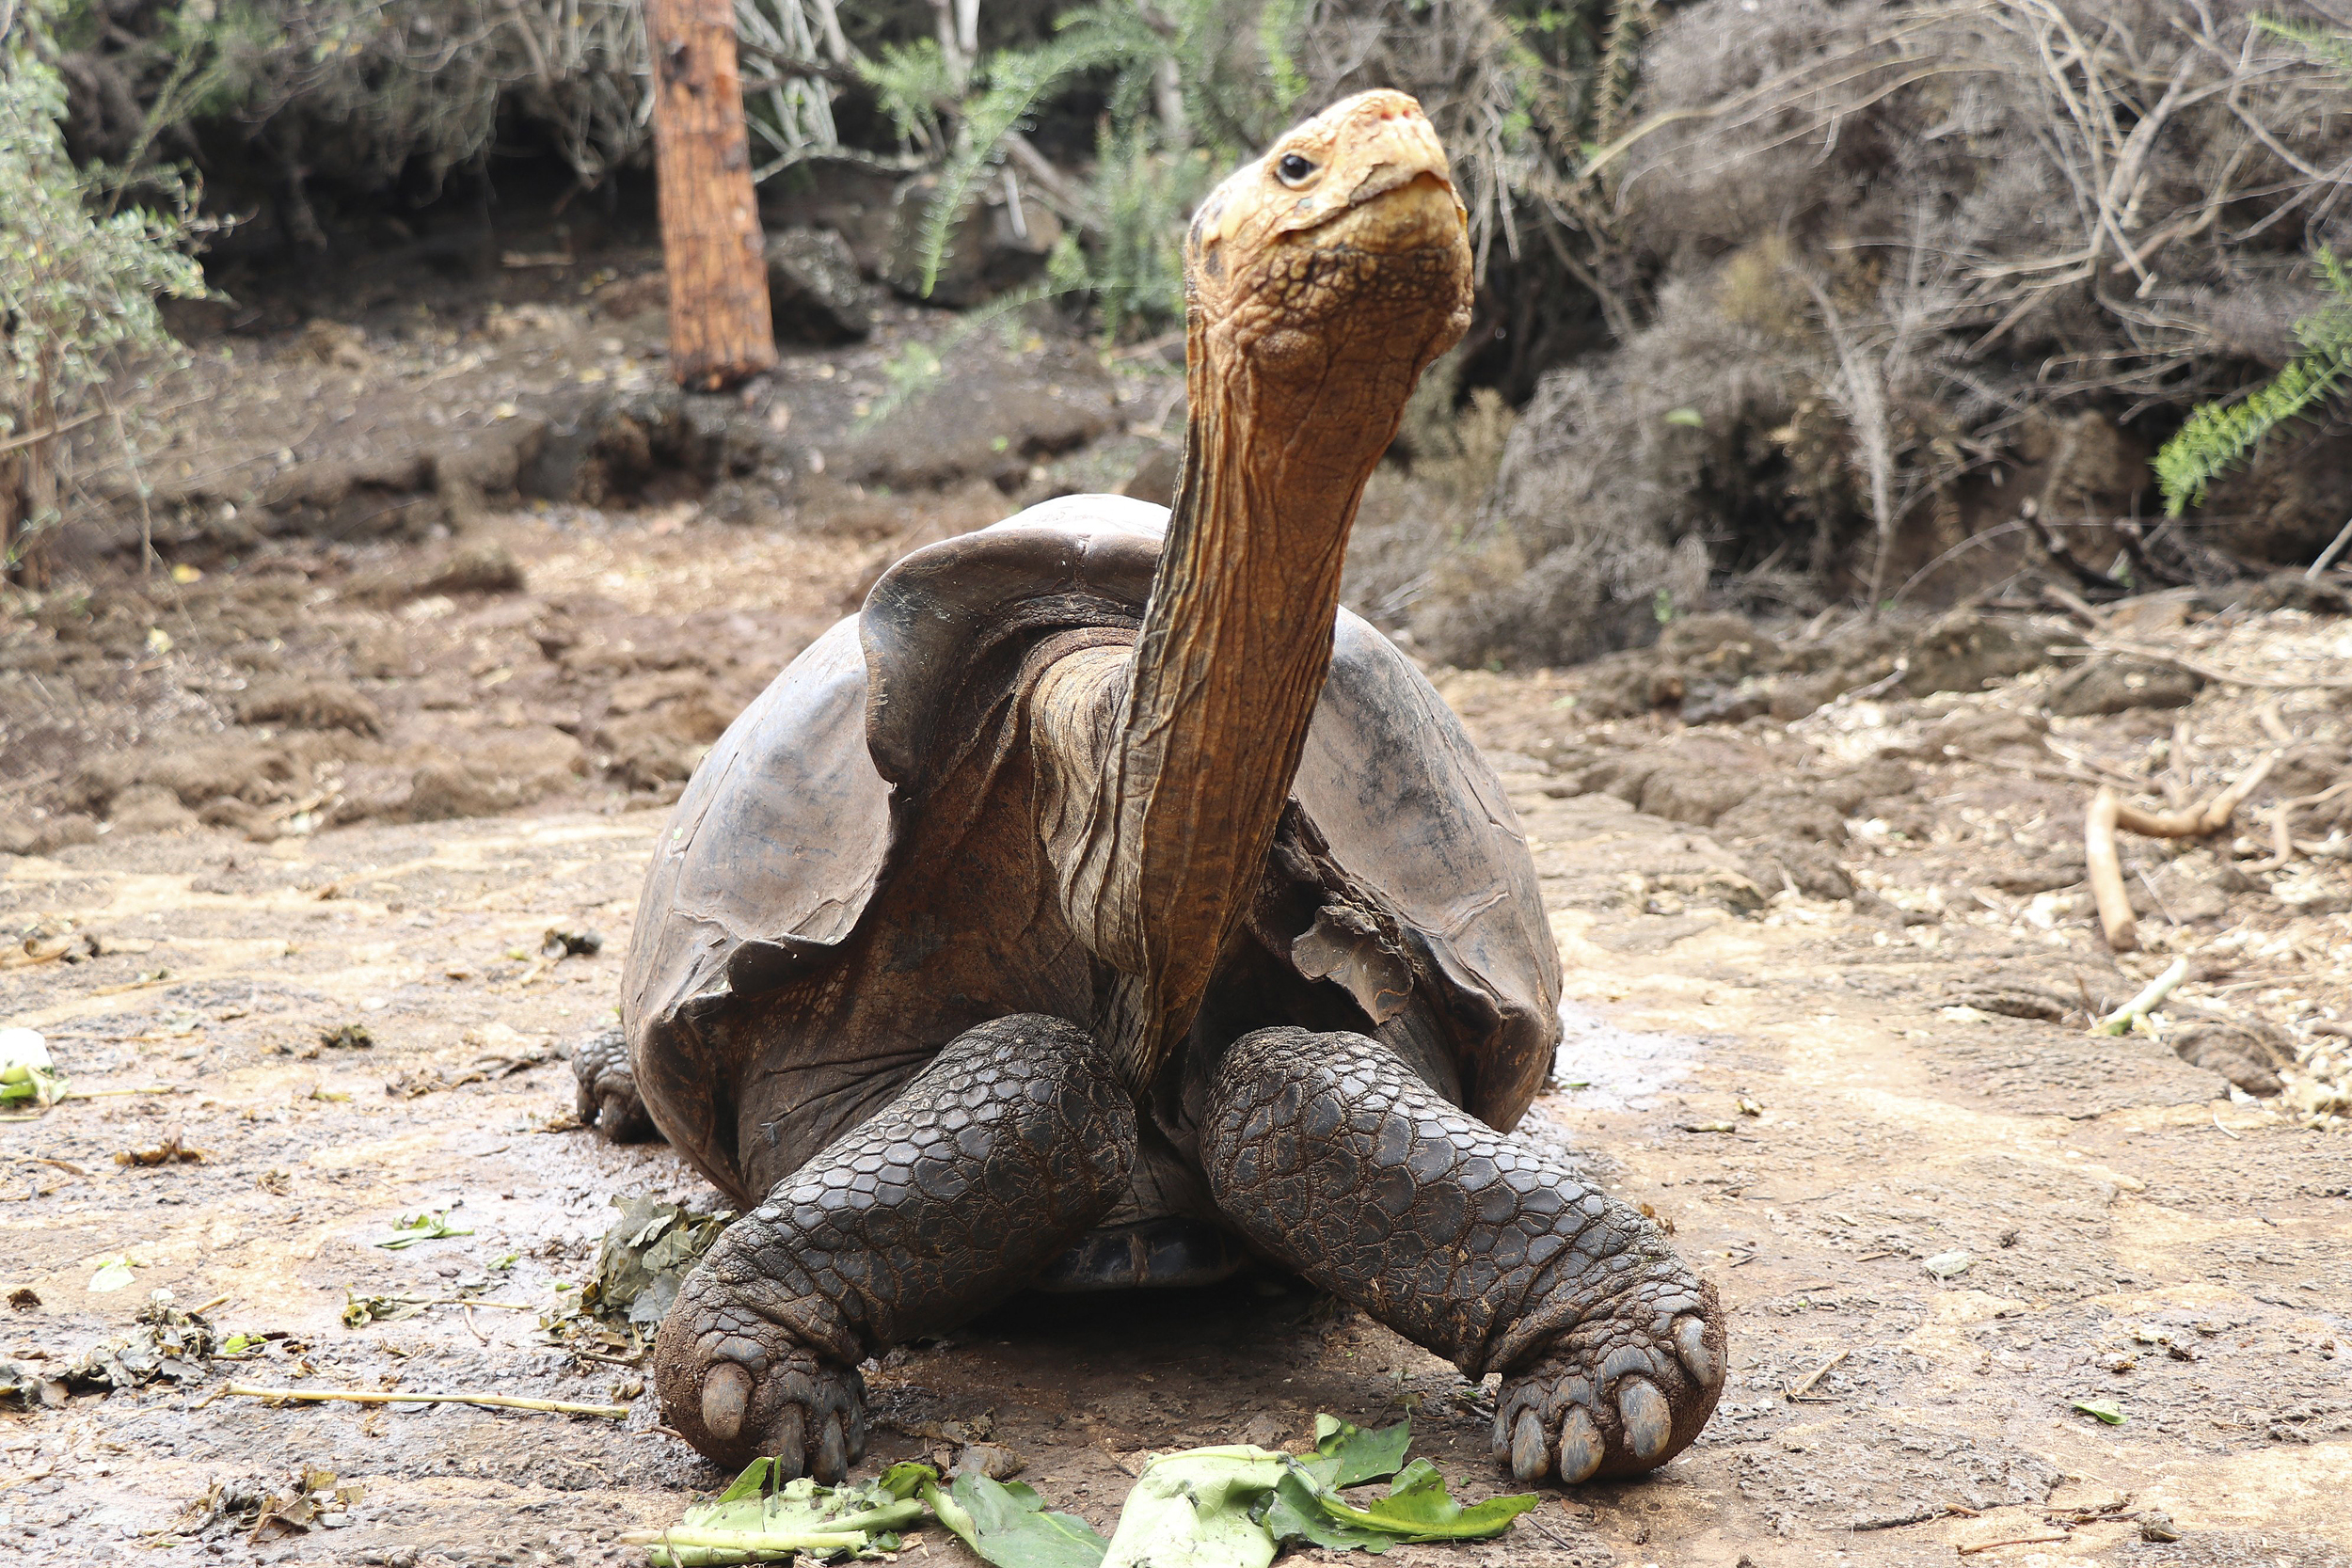 Giant Tortoise Who Helped Save Species Retires In Galapagos